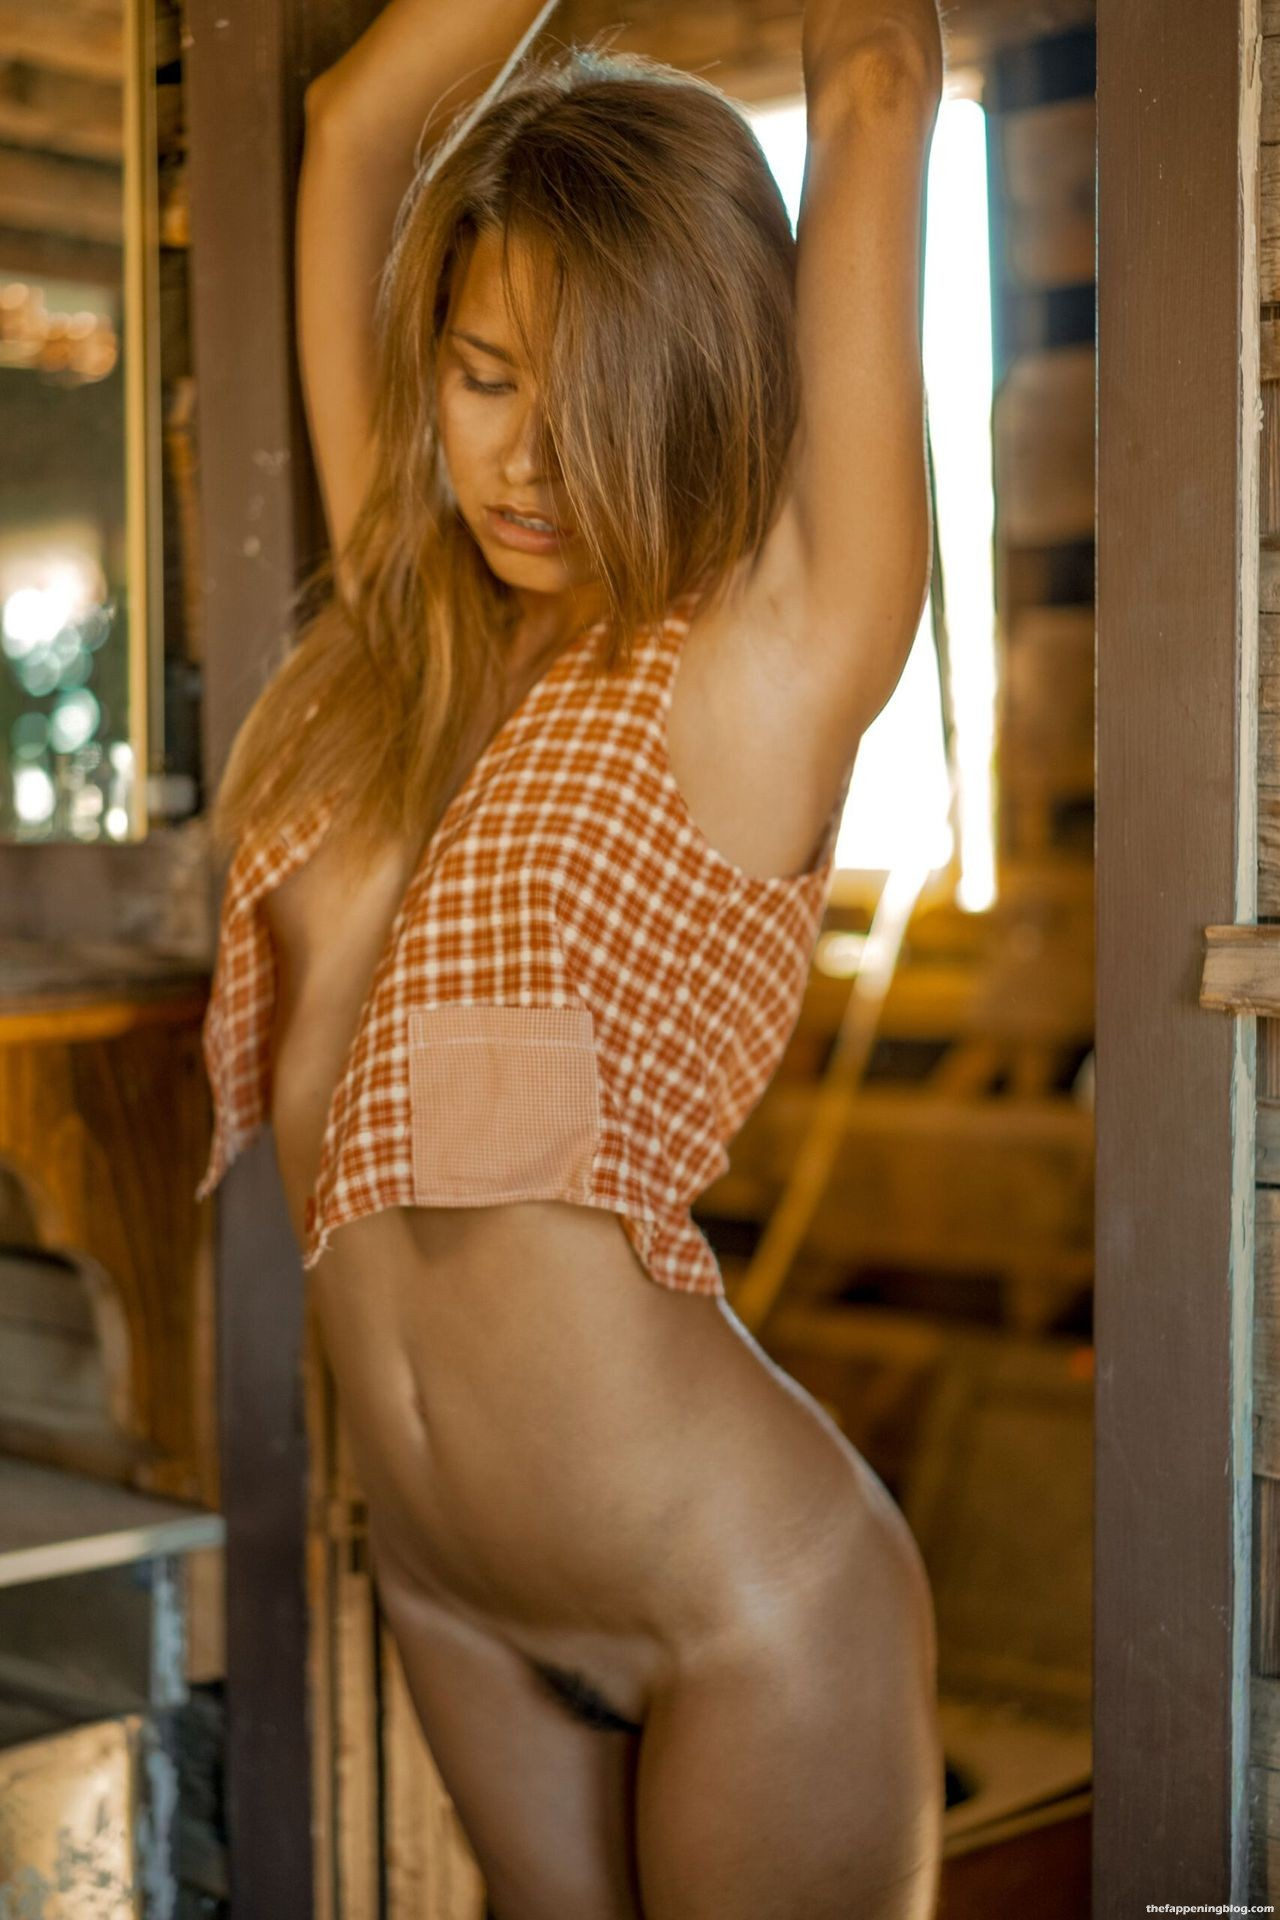 Marisa-Papen-Stunning-Naked-Body-14-scaled1-thefappeningblog.com_.jpg